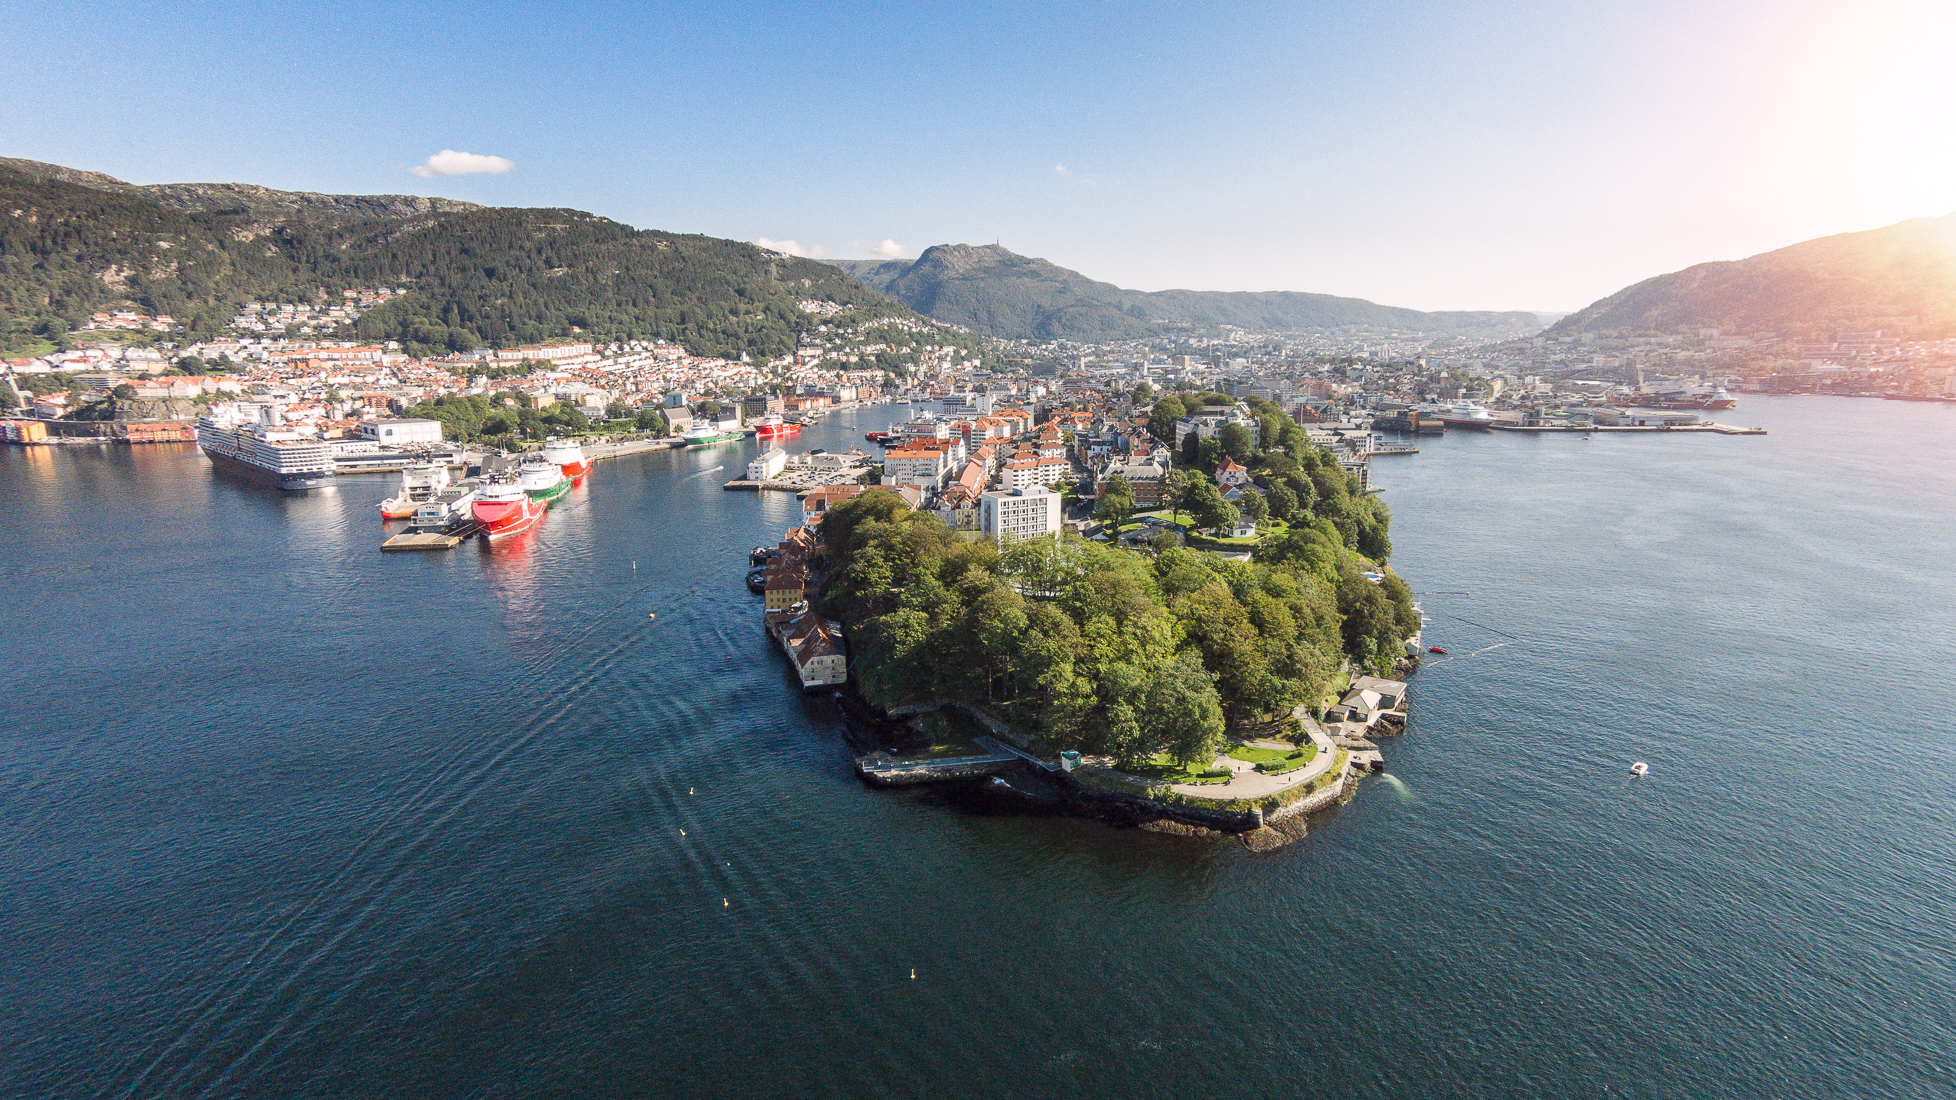 Nordnes in Bergen, Norway. Taken with DJI Phantom 2 Vision Plus a sunny day.